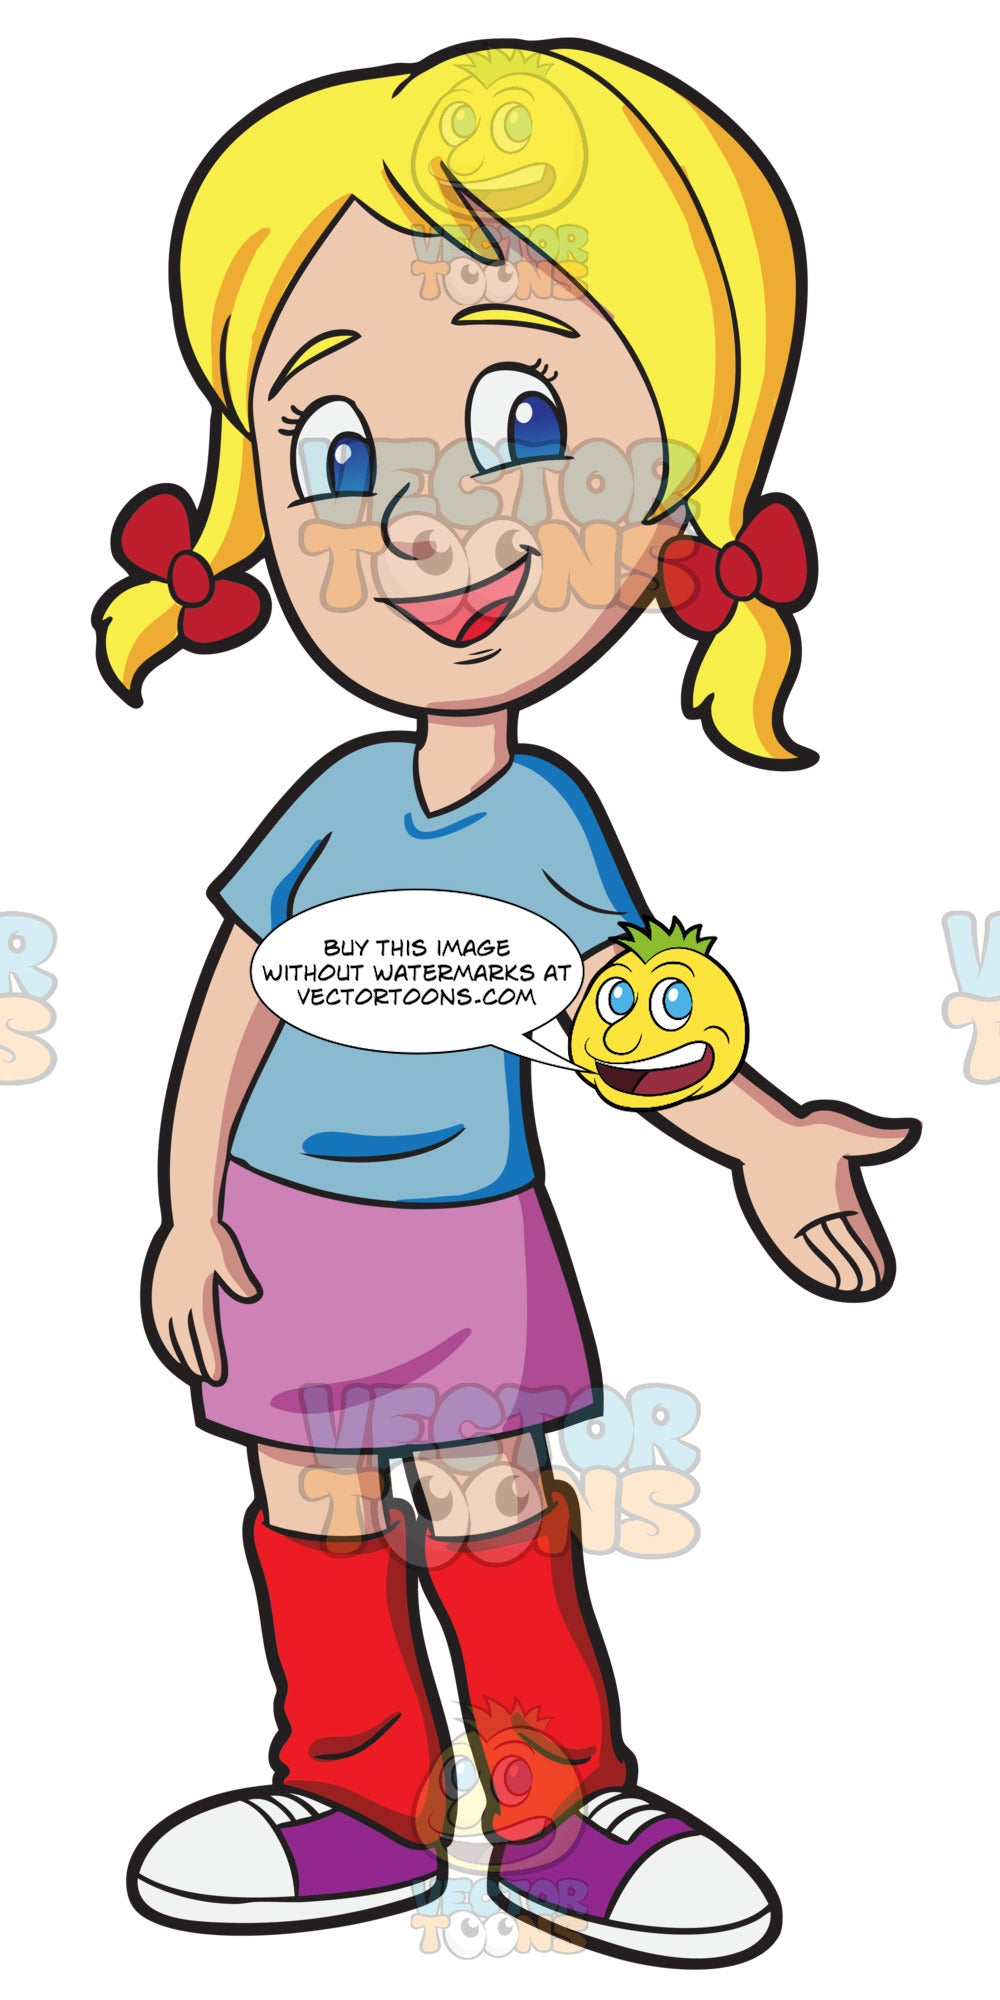 A Middle School Girl Looking Friendly And Warm Clipart Cartoons By Vectortoons